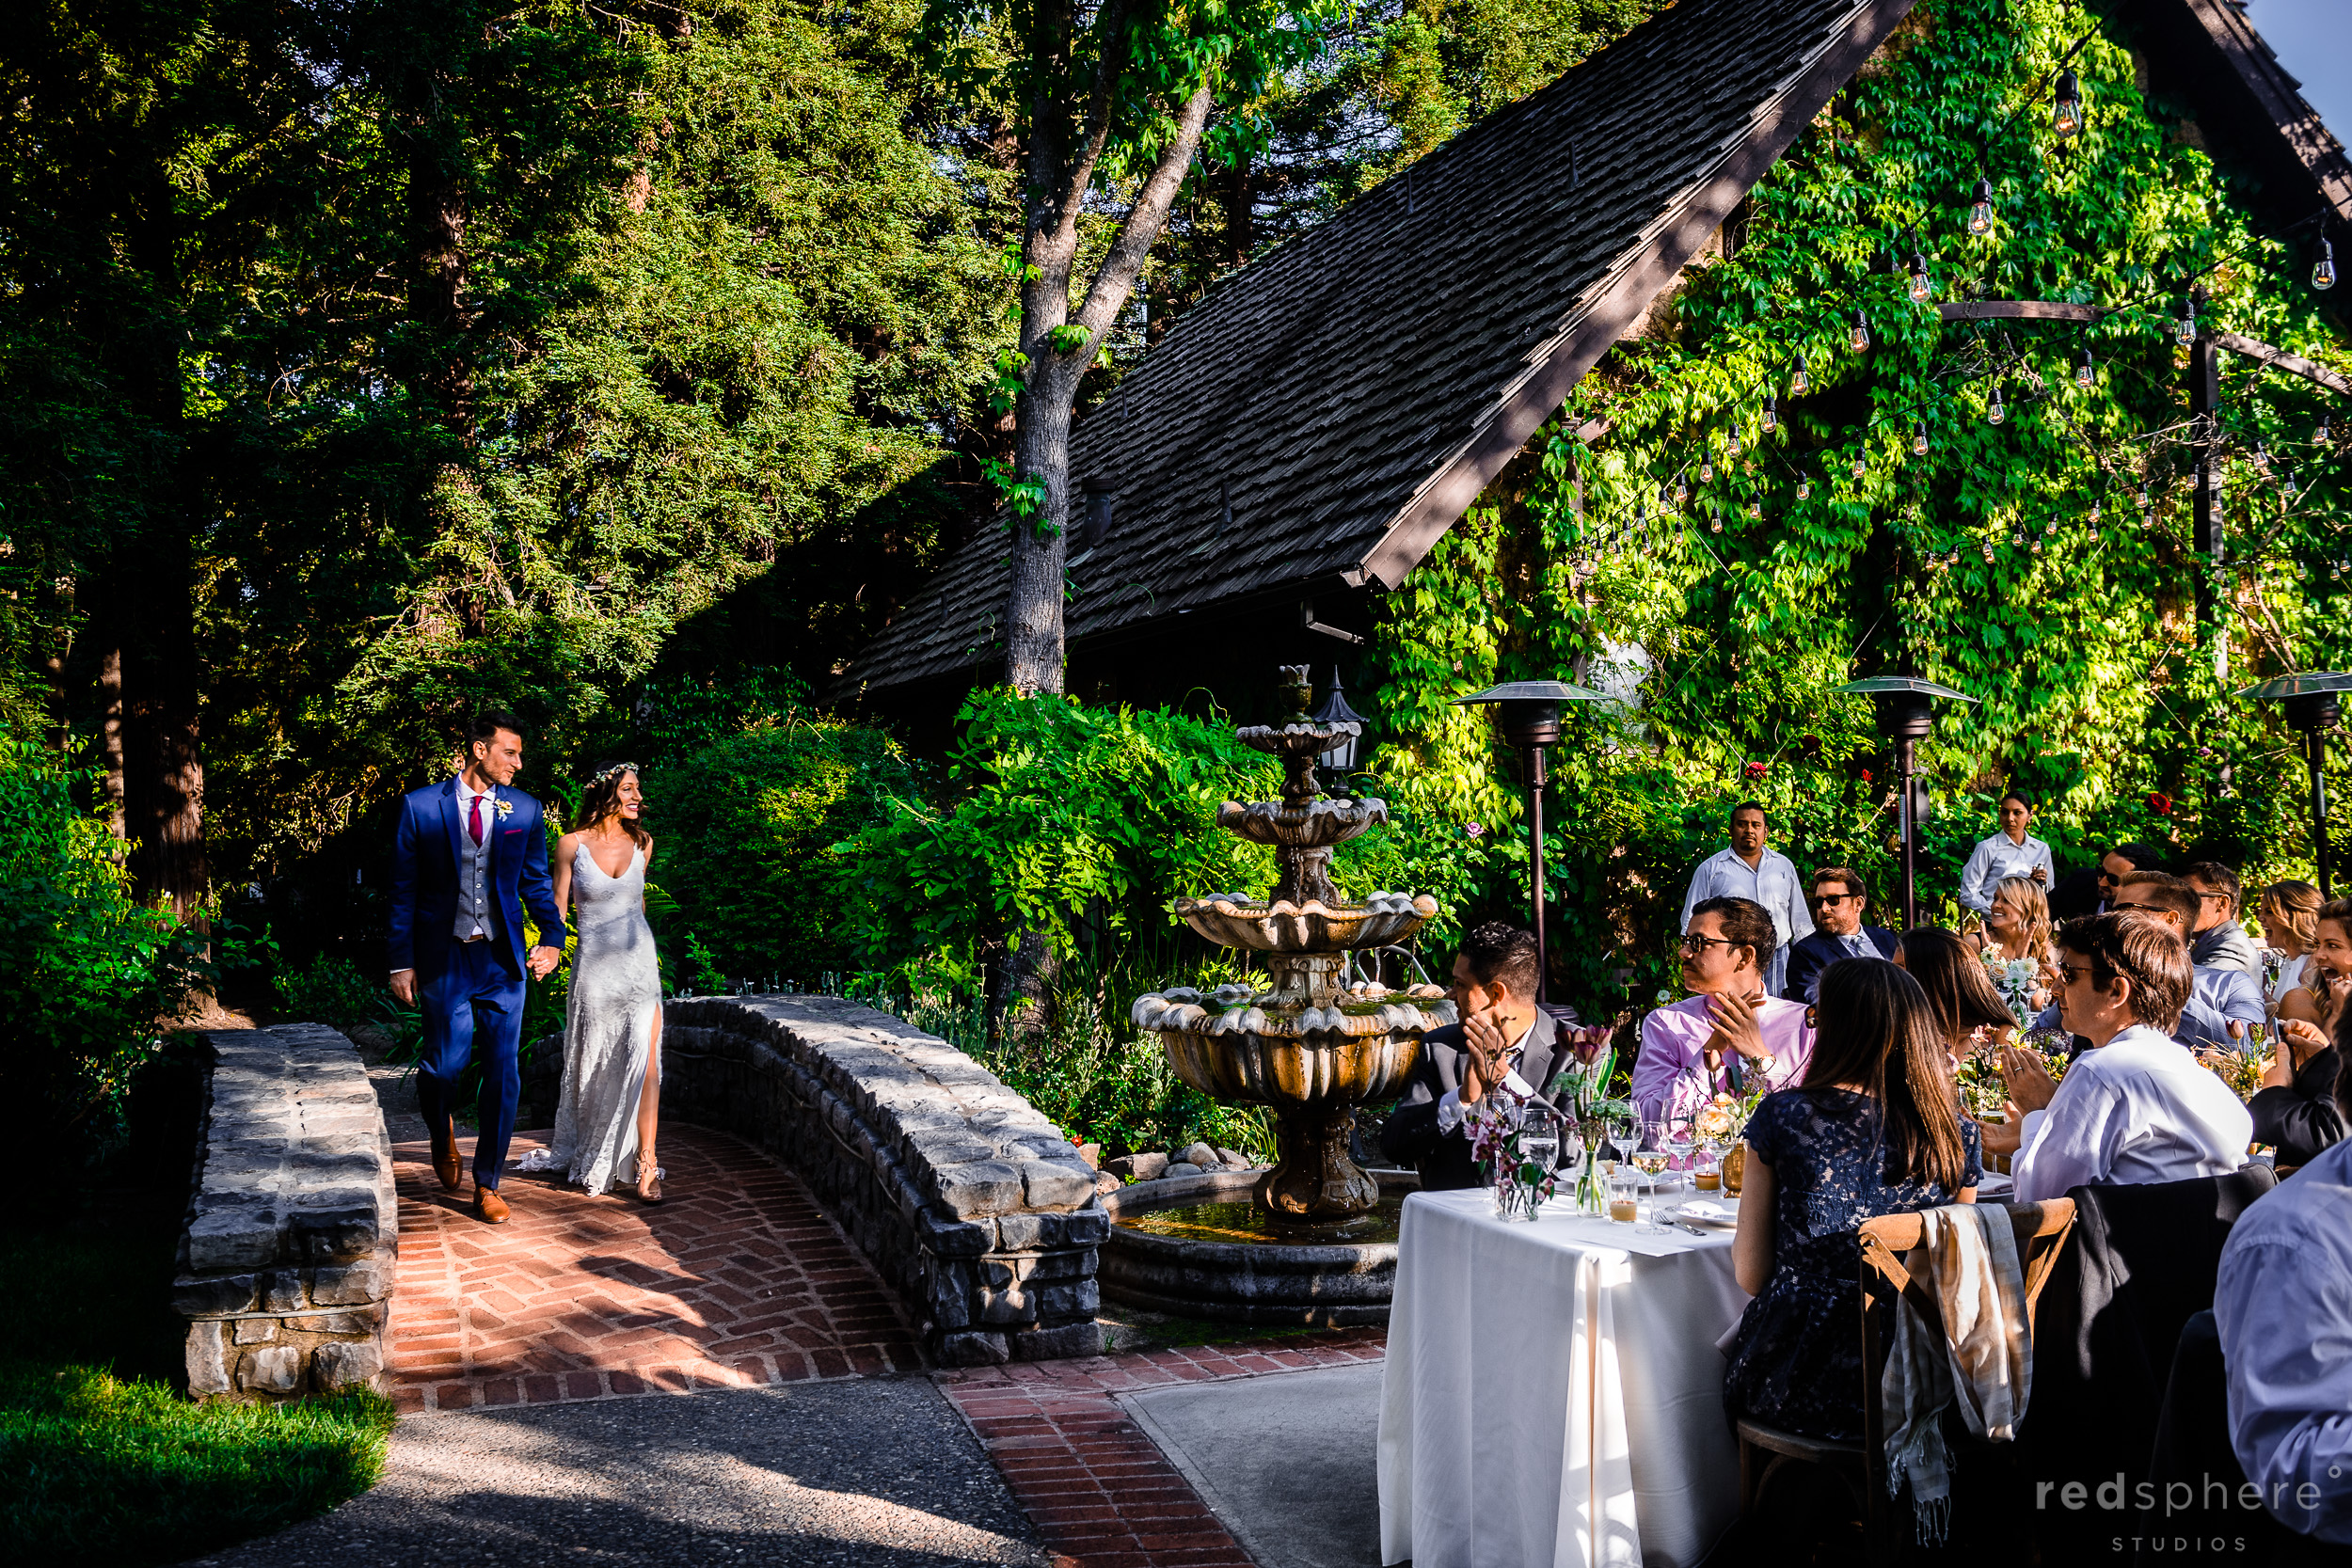 Bride and groom greeting guests at wedding reception. Harvest Inn By Charlie Palmer, St. Helena, Napa Valley